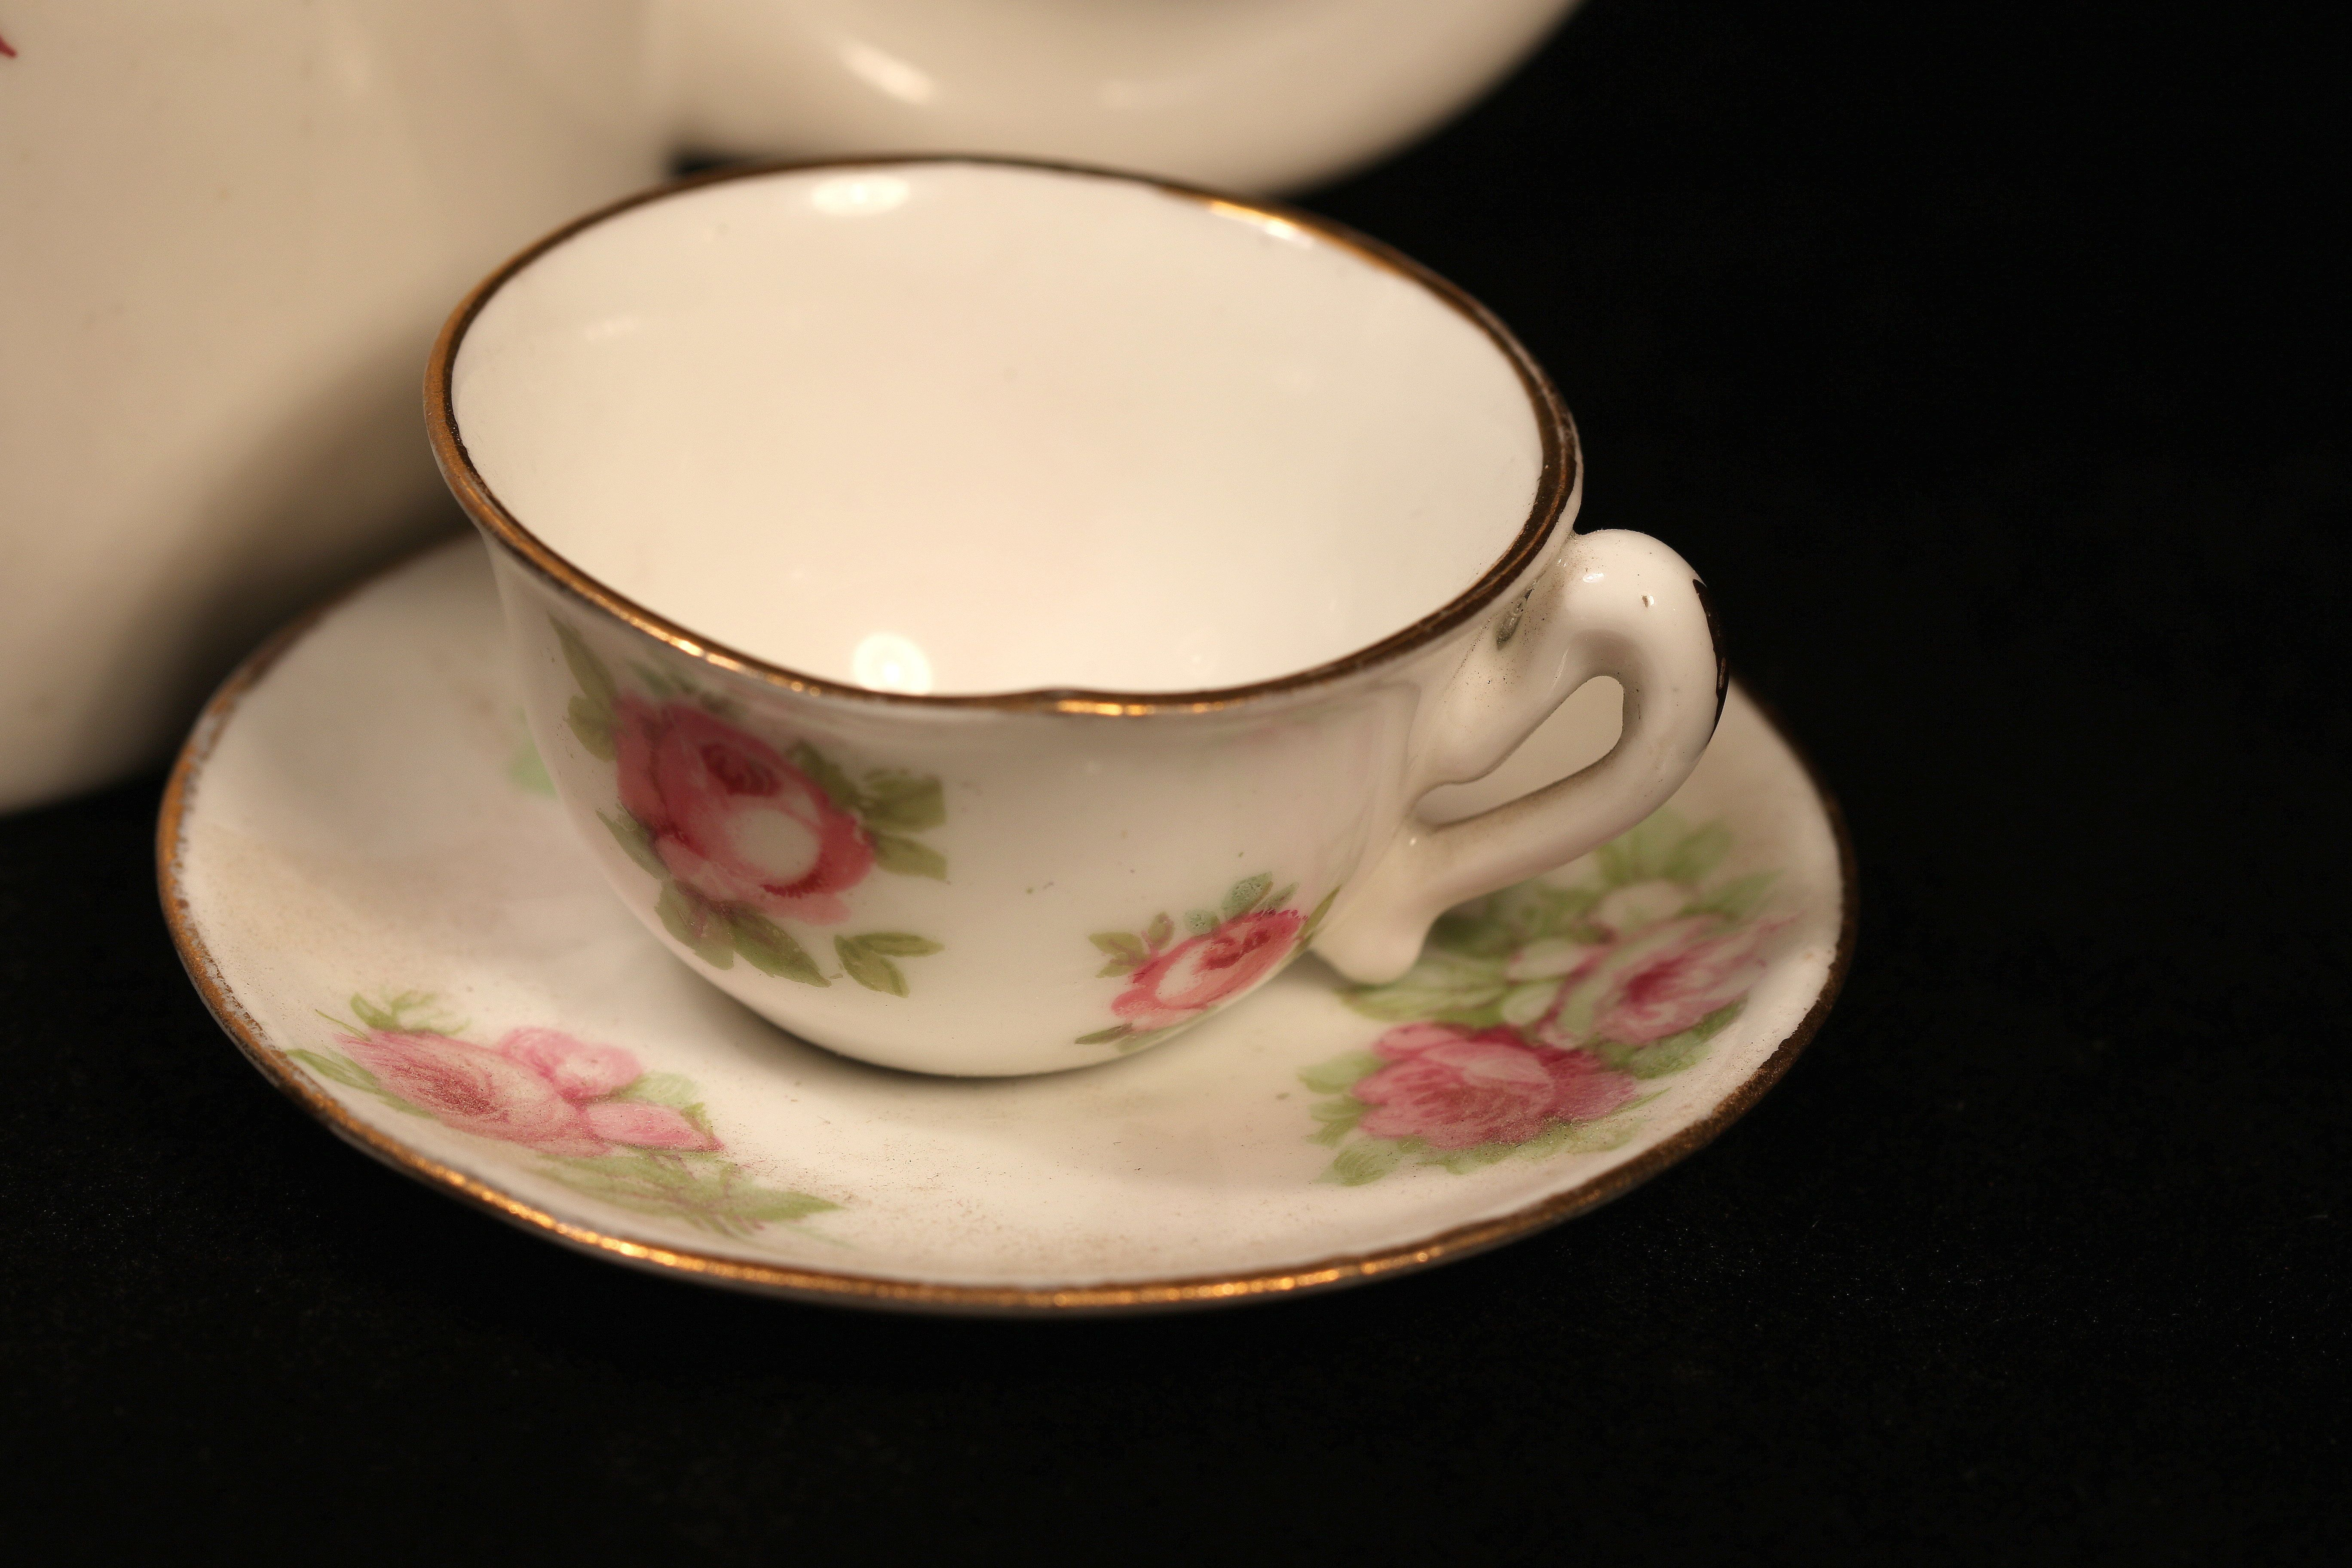 """For 2016: one photo each day (79/366) and for Macro Monday theme """"inheritance"""". My wife inherited this miniature teacup from her grandmother, who collected these things. Although it appears to be made for a dollhouse, it bears the stamp of an English china maker, and was acquired from an antique store in New York City. For scale I placed a normal size coffee mug behind the teacup."""